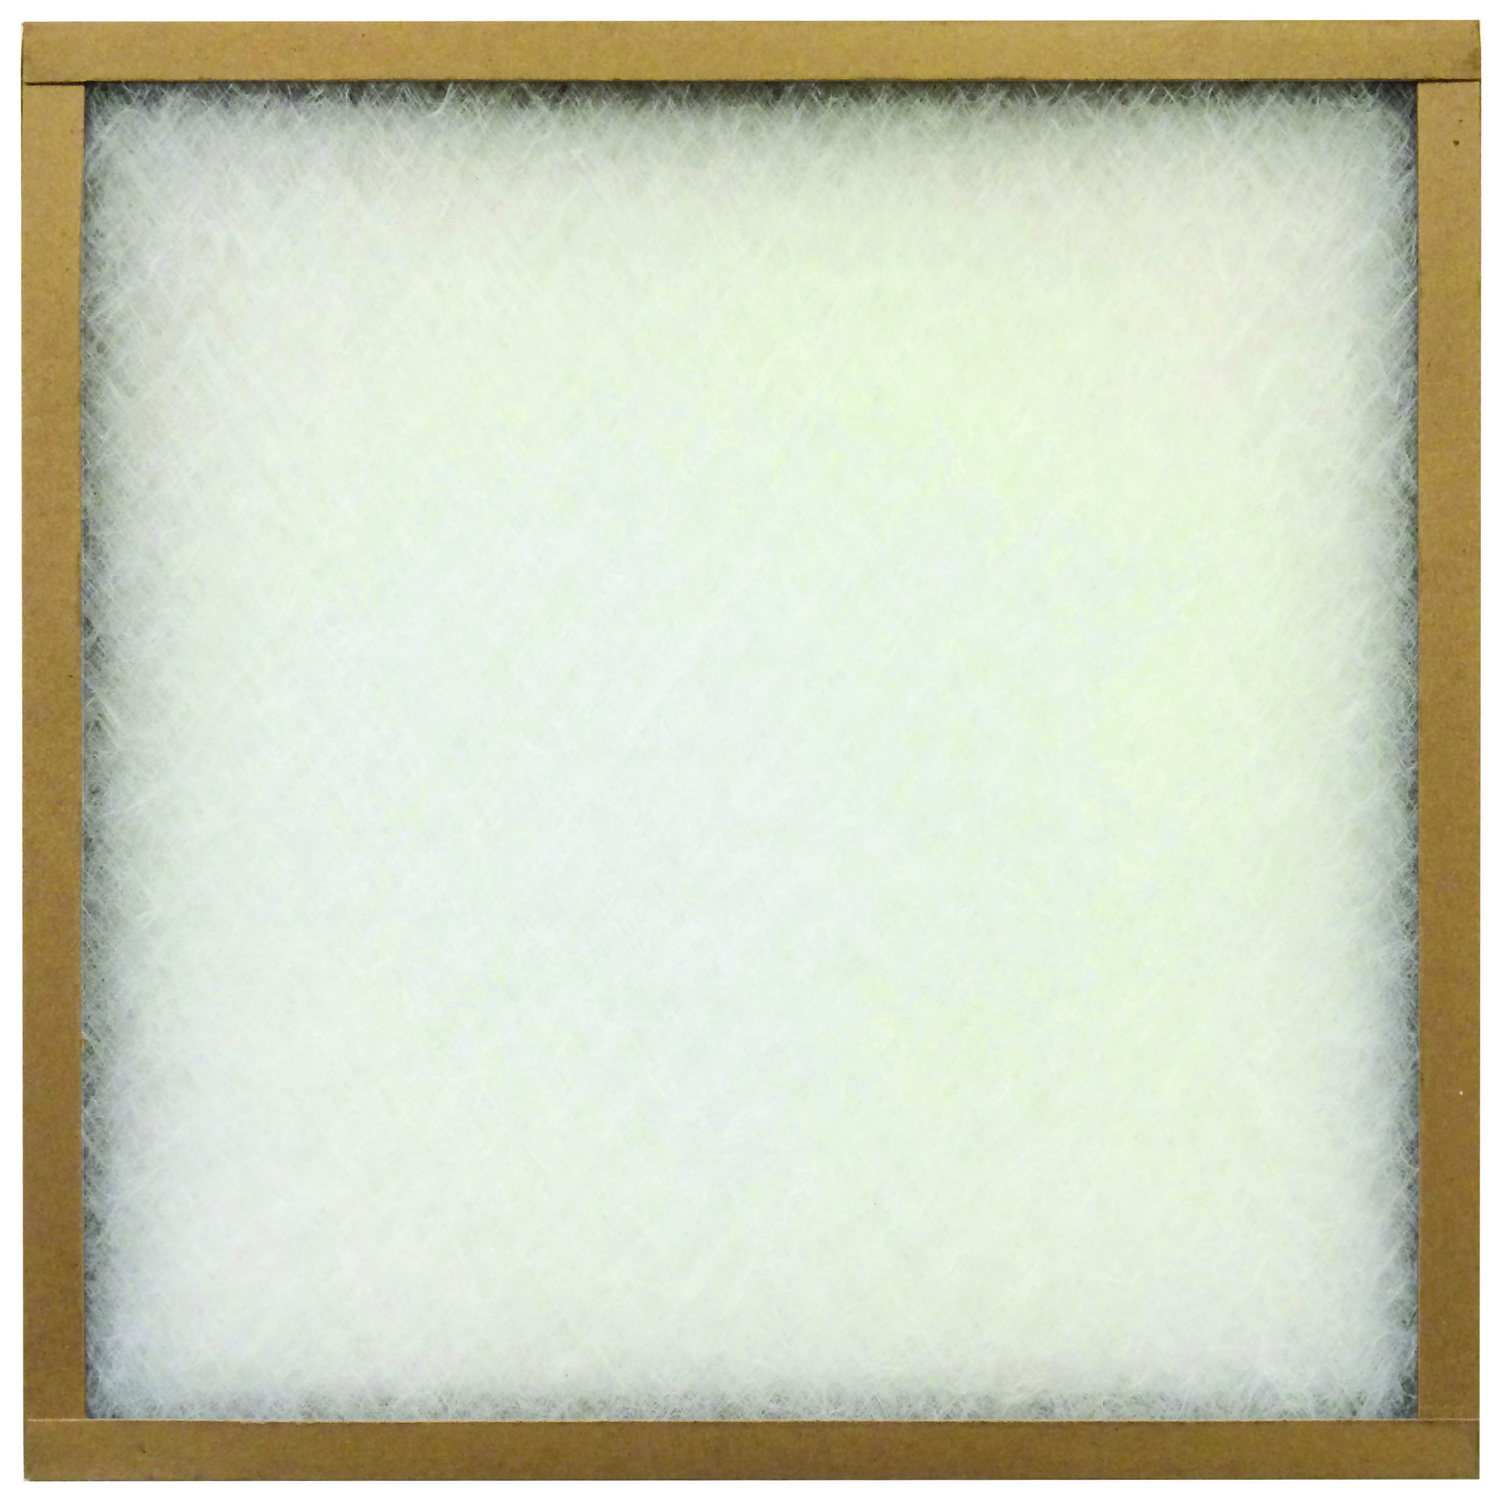 Ace  24 in. H x 12 in. W x 1 in. D Fiberglass  Air Filter